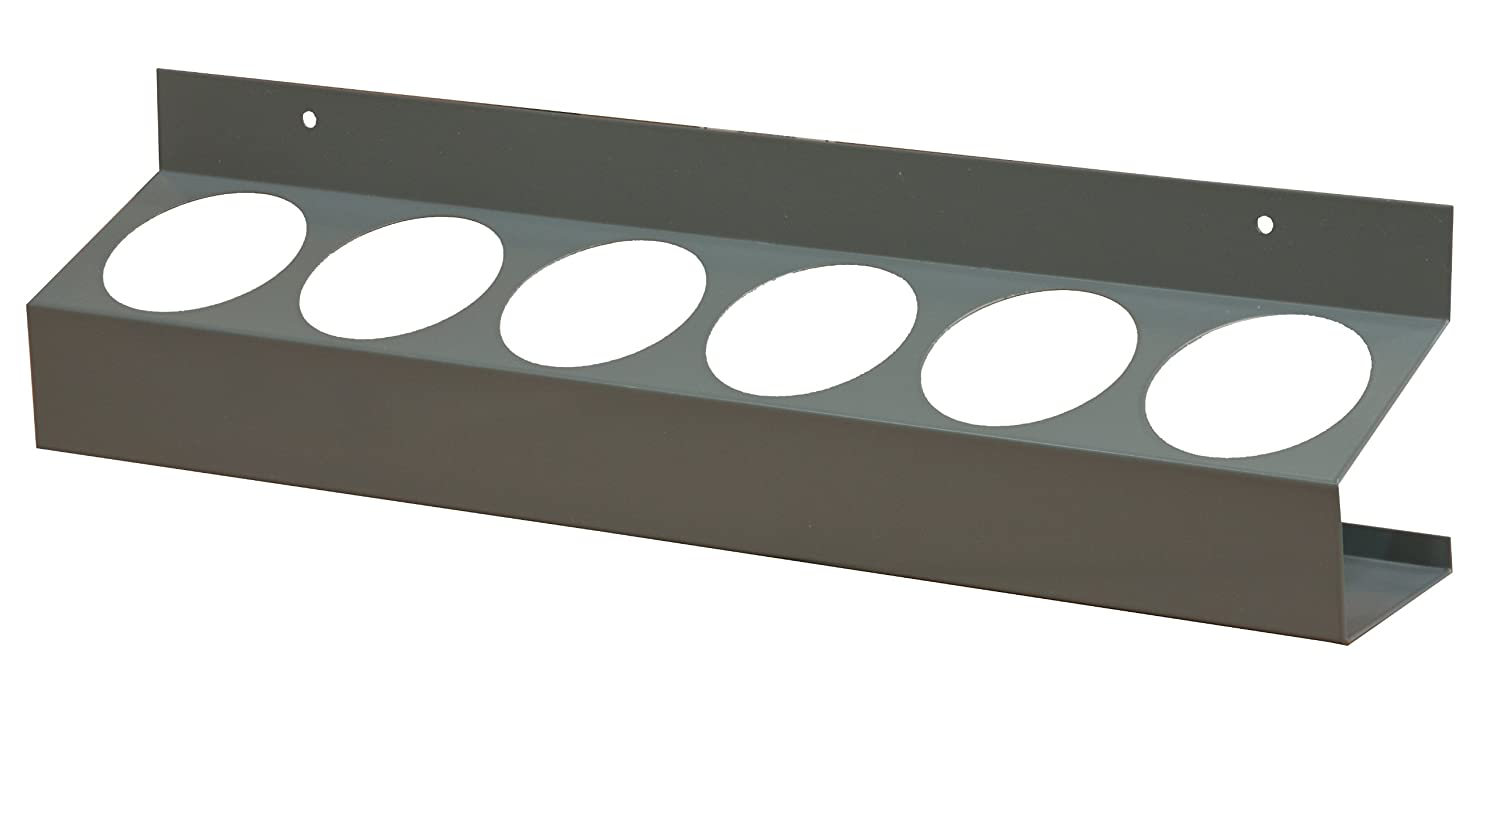 """Durham 385-95 Gray Cold Rolled Steel 6 Sections Aerosol Can Caddy, 21-1/2"""" Width x 5-1/4"""" Height x 3-1/8"""" Depth"""